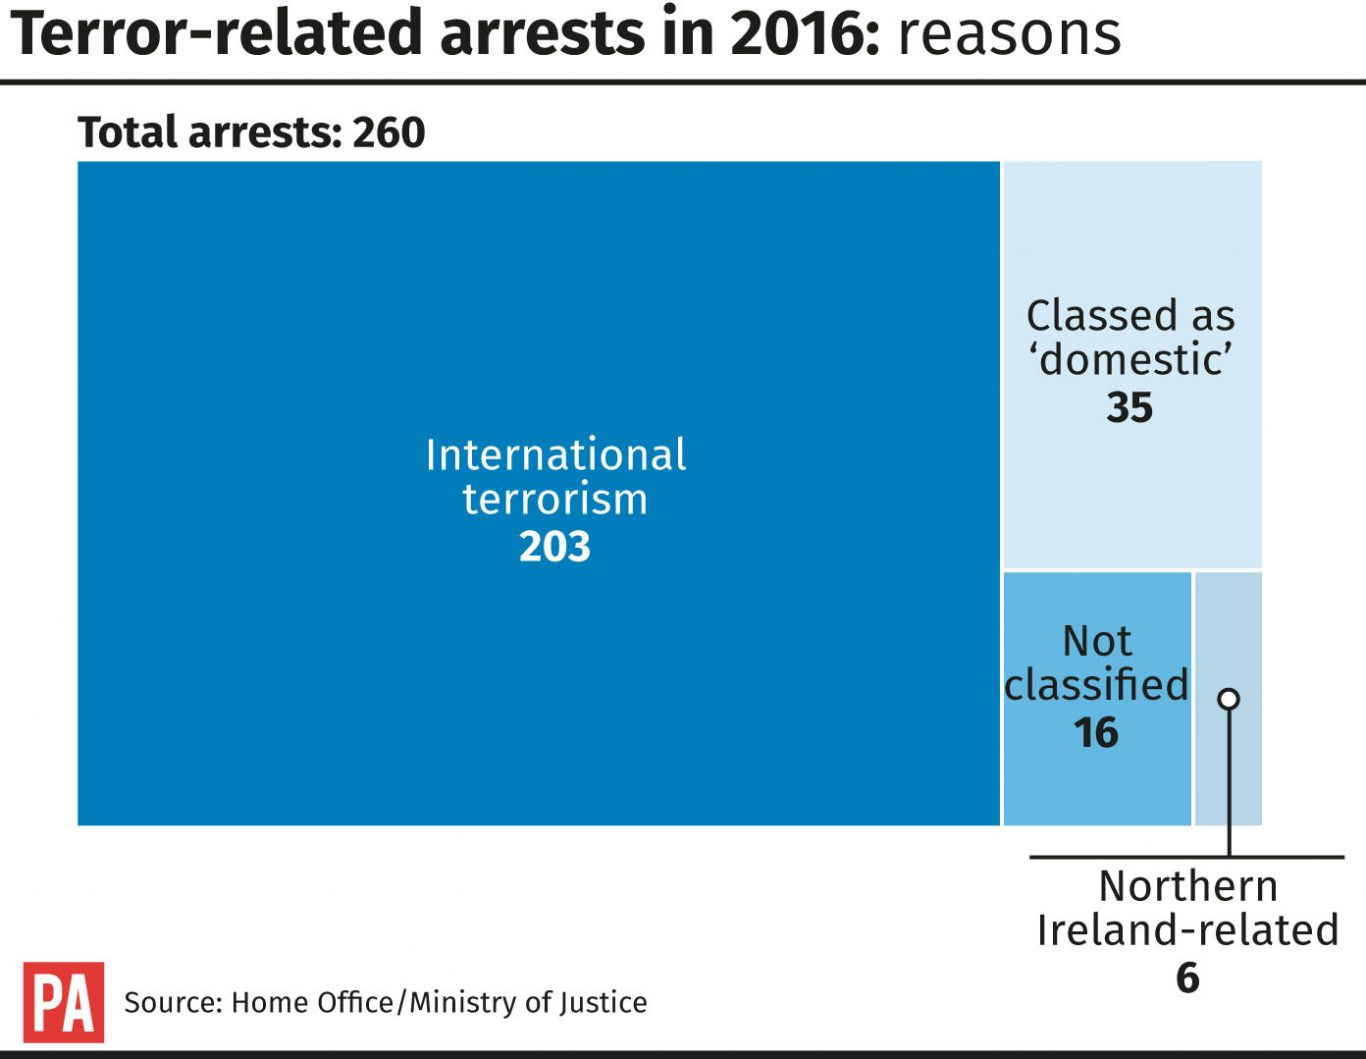 Terror-related arrests in 2016 - reasons graphic